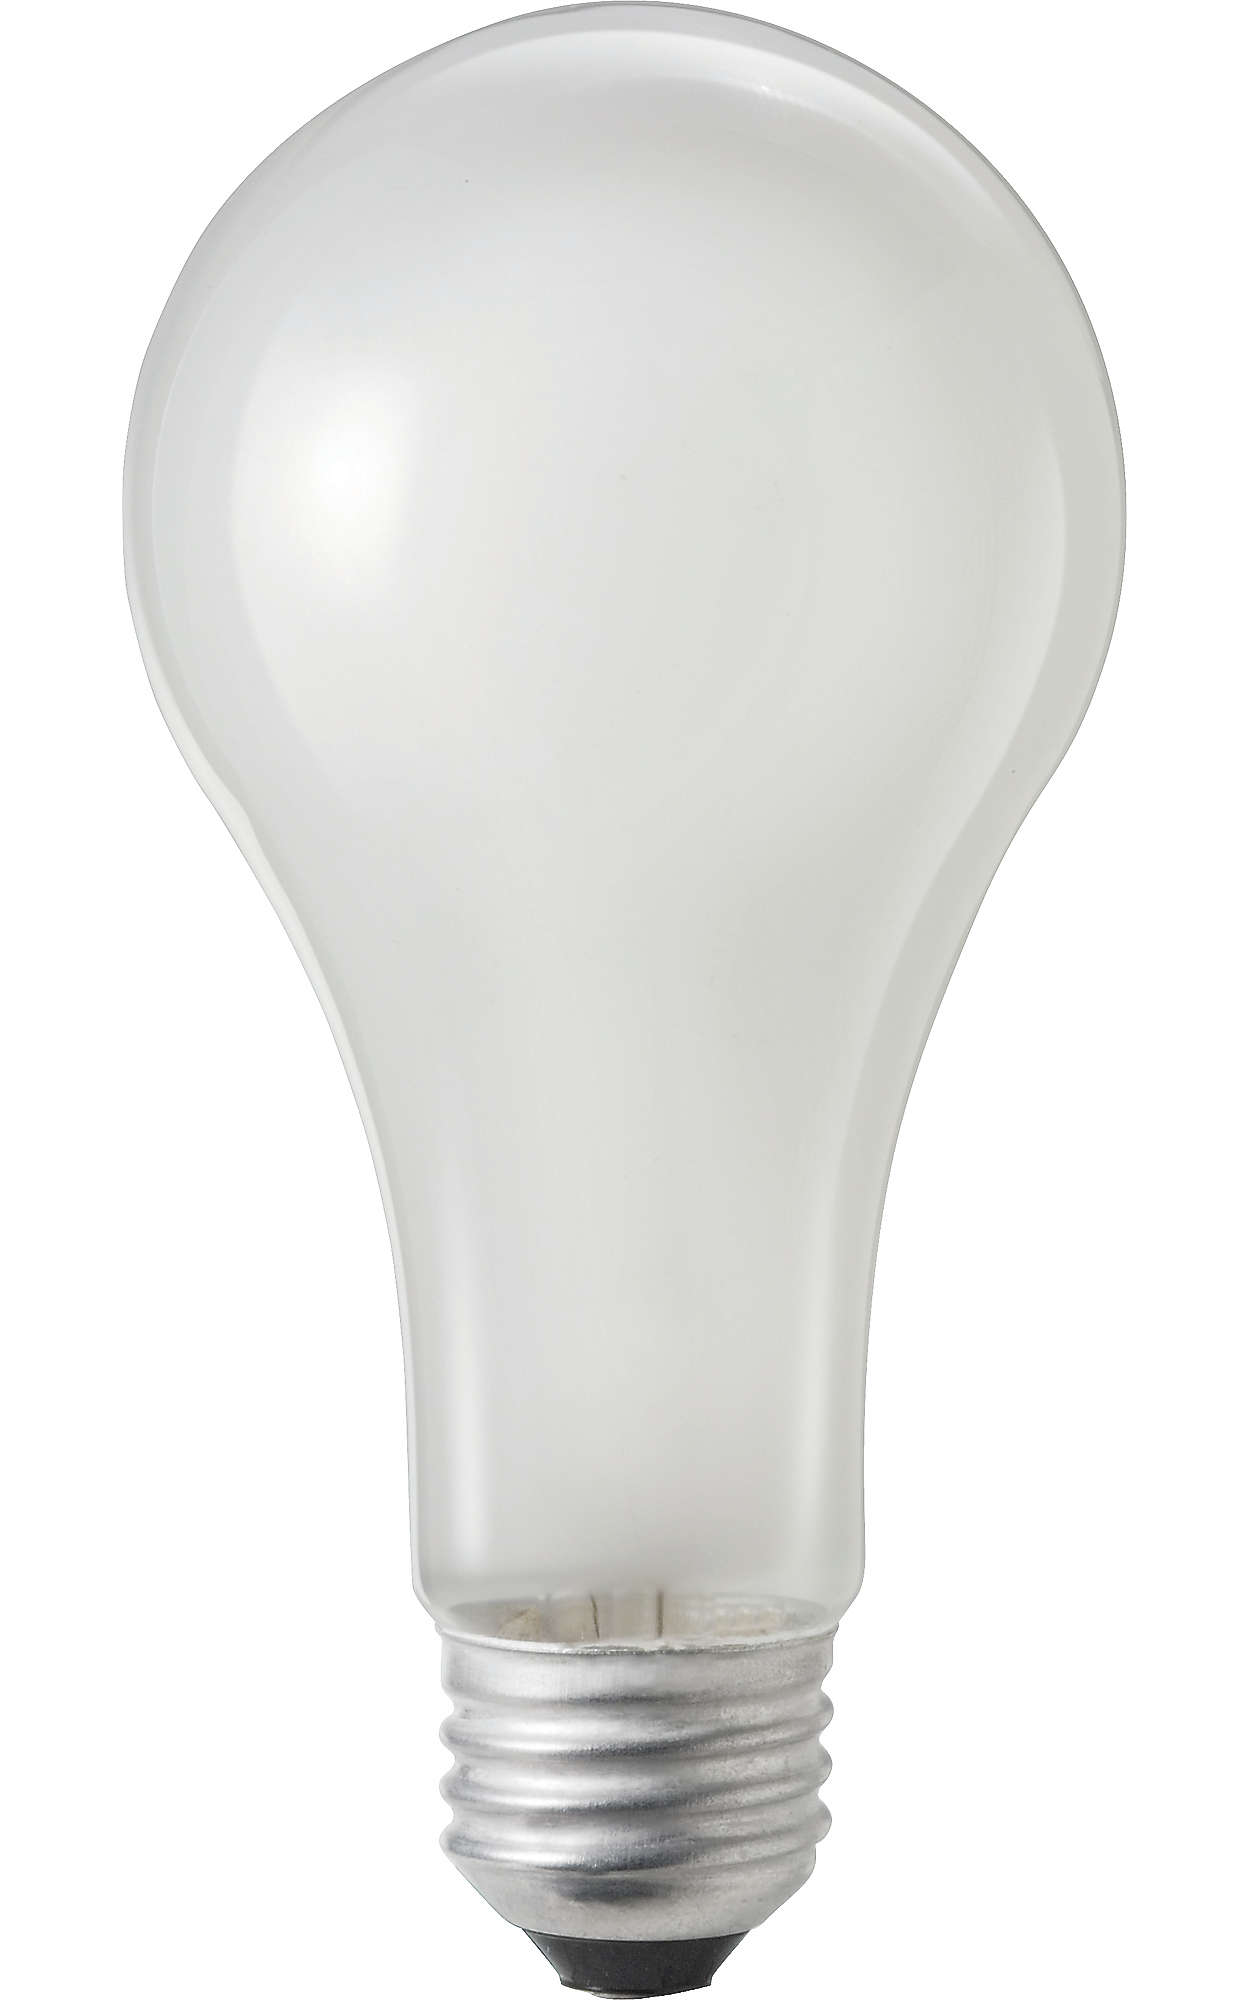 Rough Service Incandescent Lamps